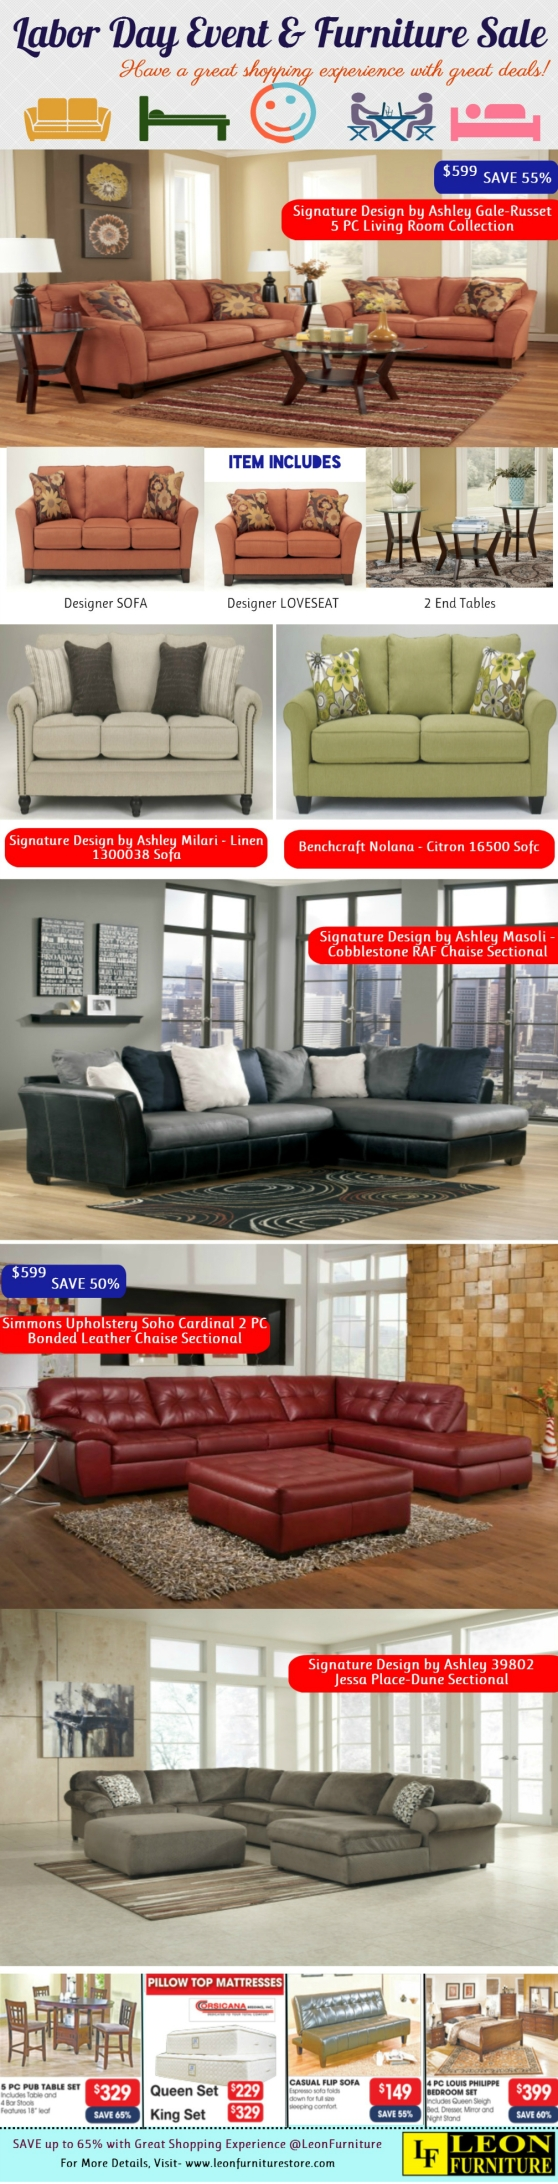 Labor Day Event and Furniture Sale